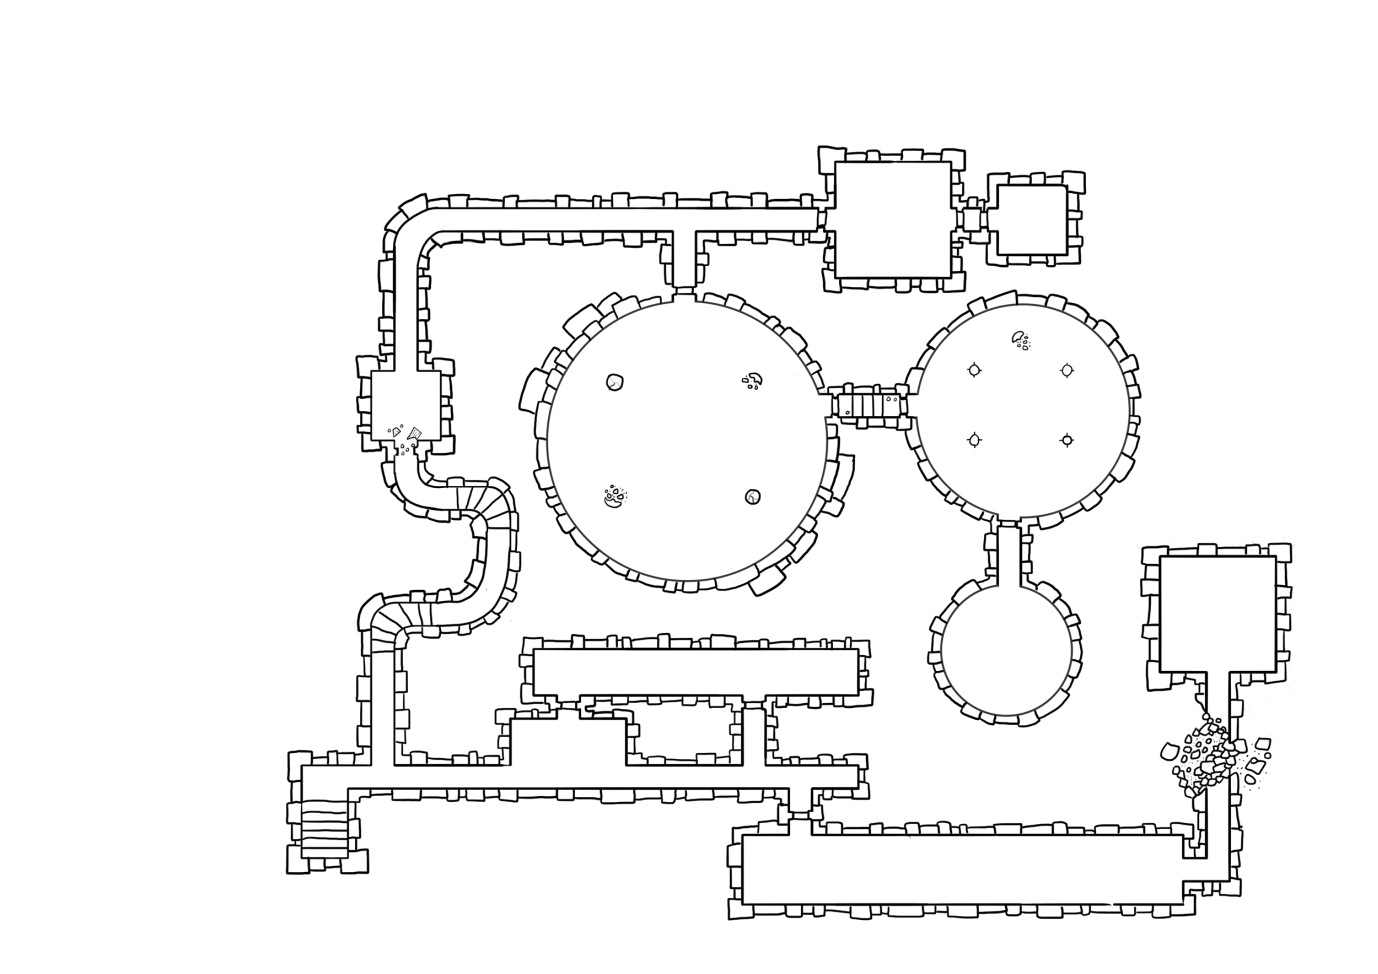 Dungeon Completo